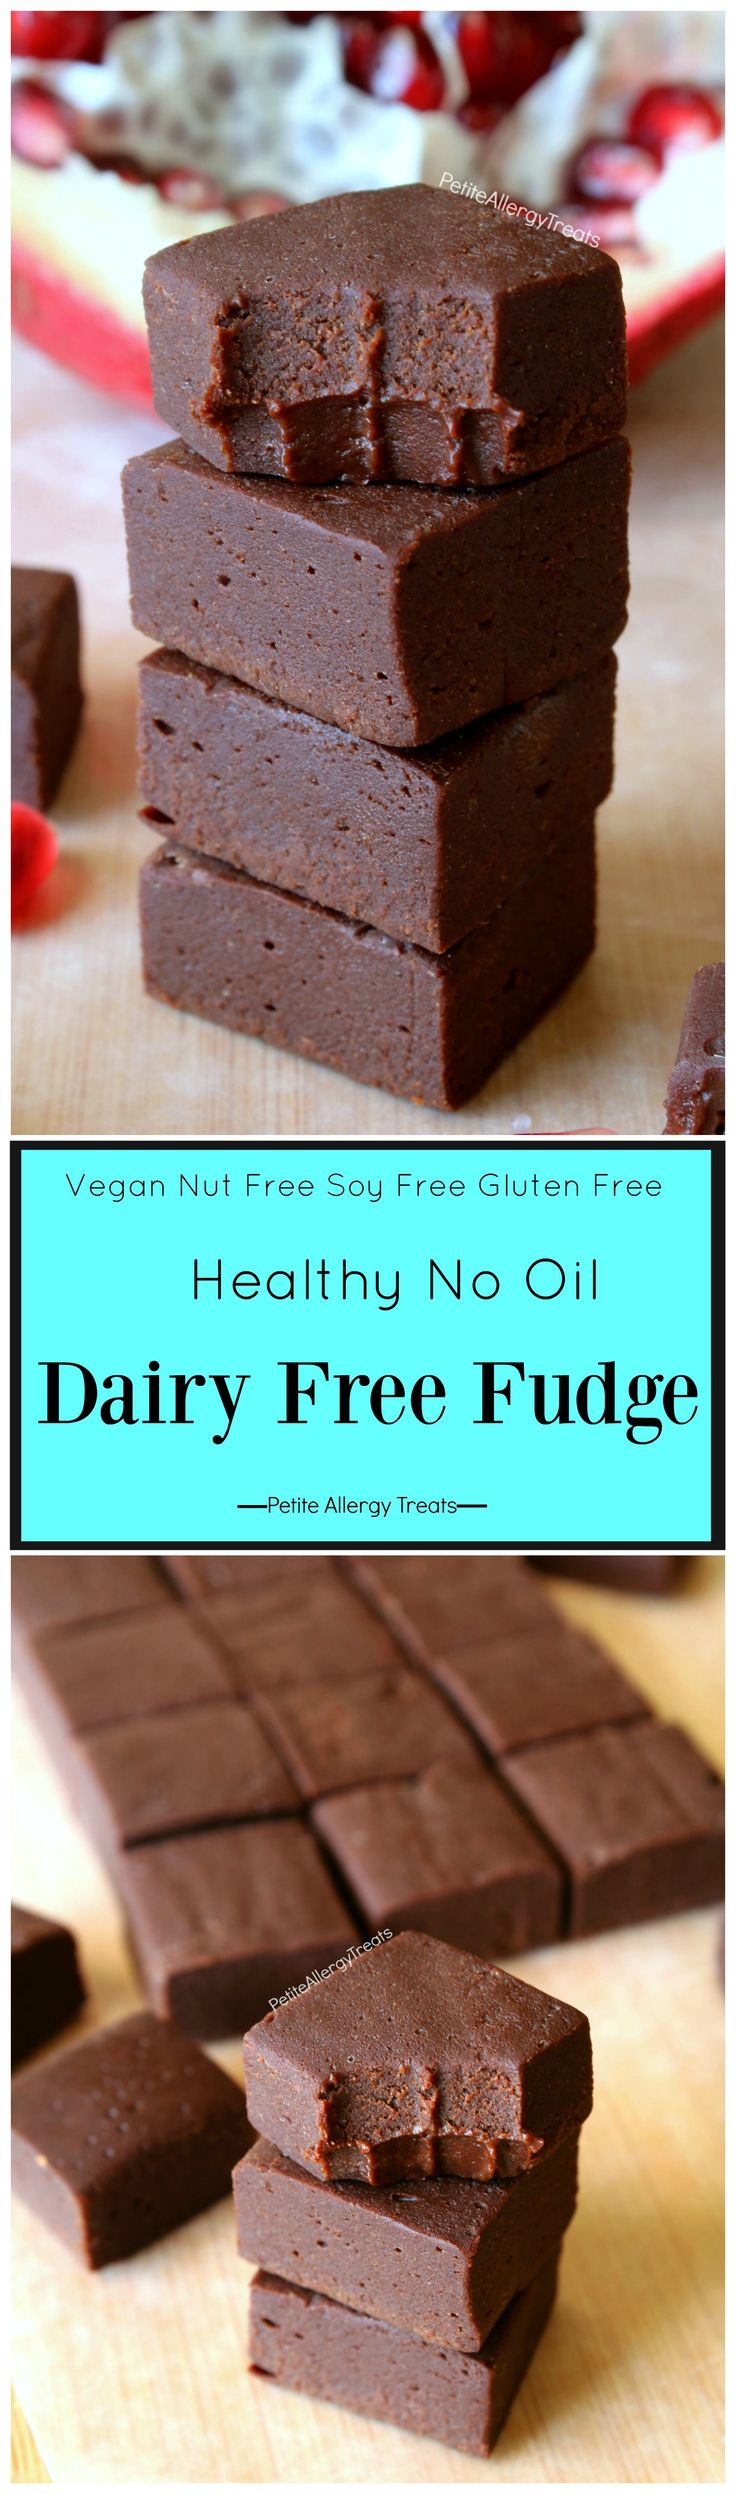 119 best Gluten Free Chocolate Lovers images on Pinterest | Gluten ...